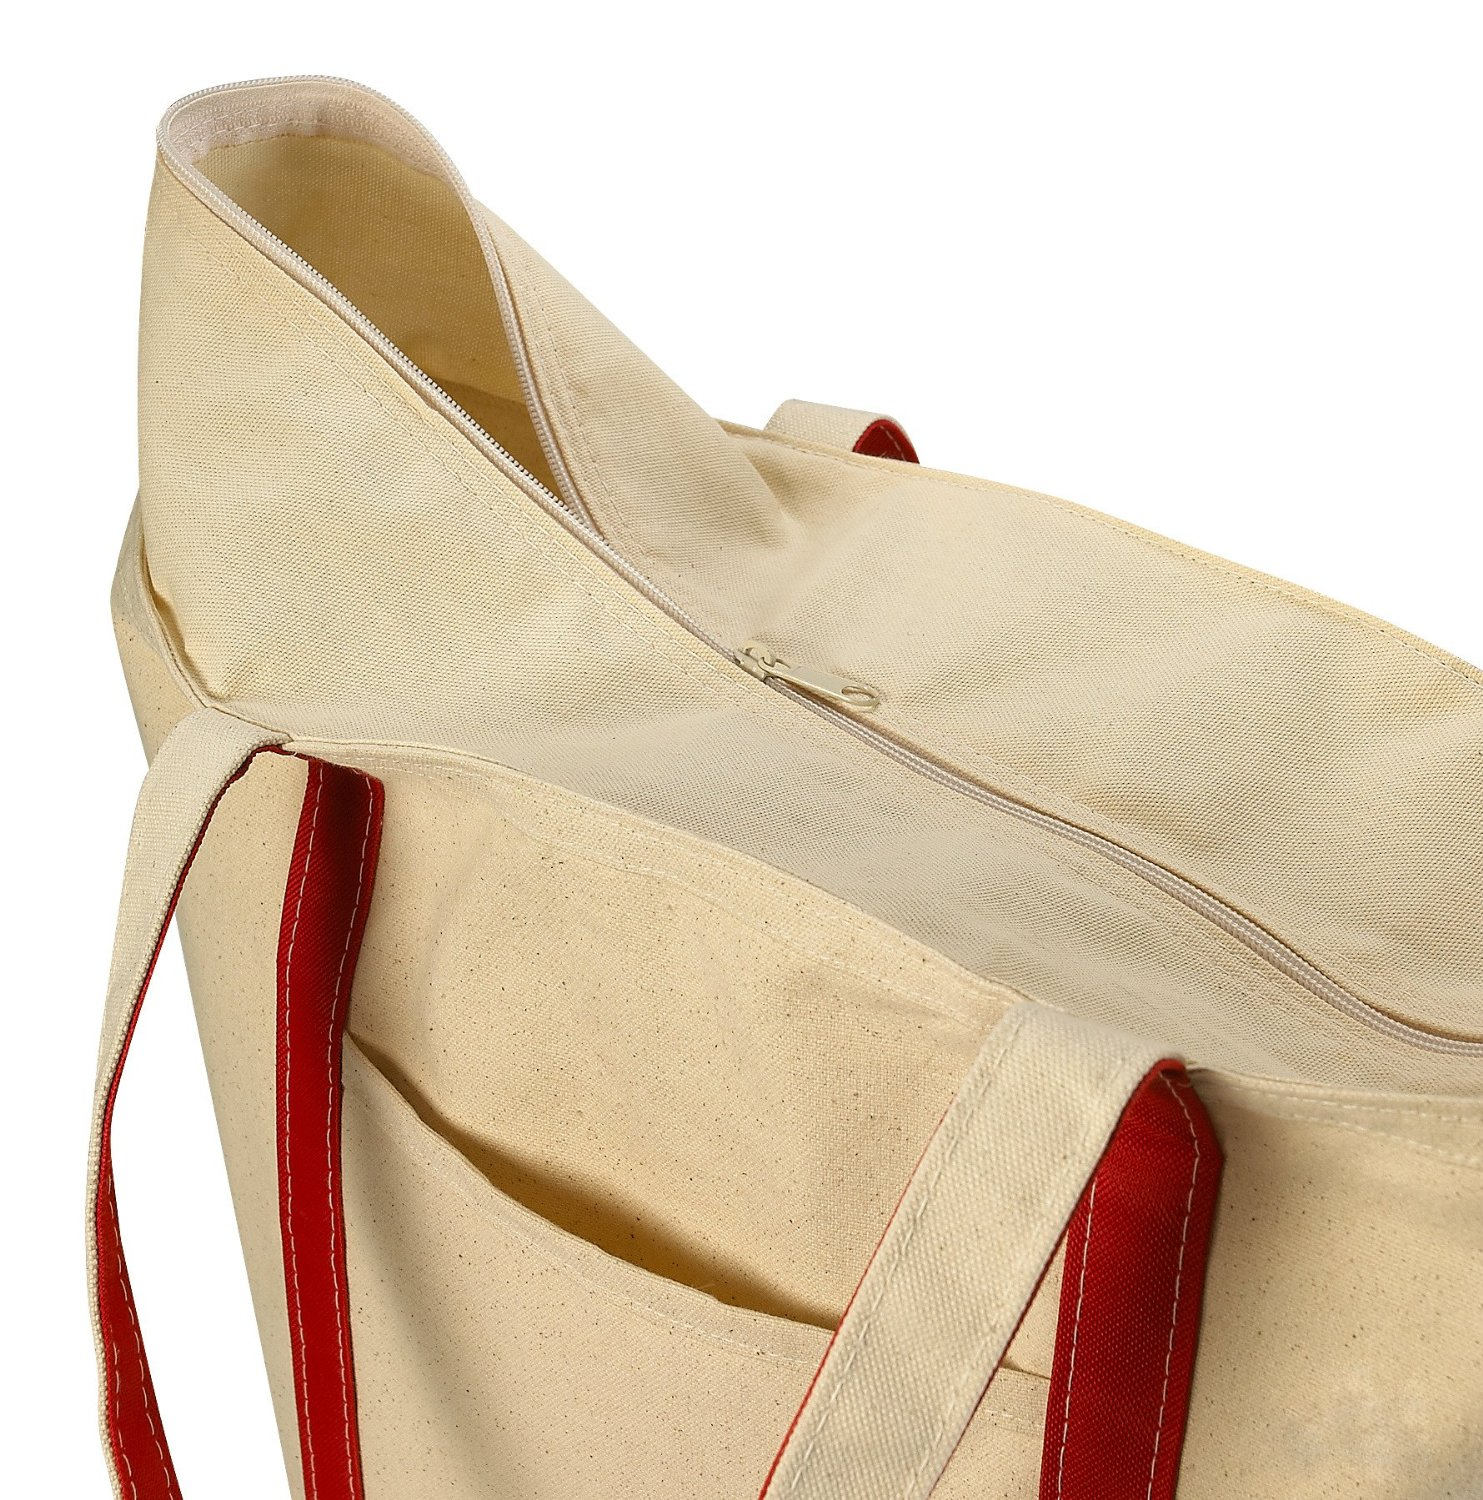 Zippered Canvas Tote Beach Bag, Red